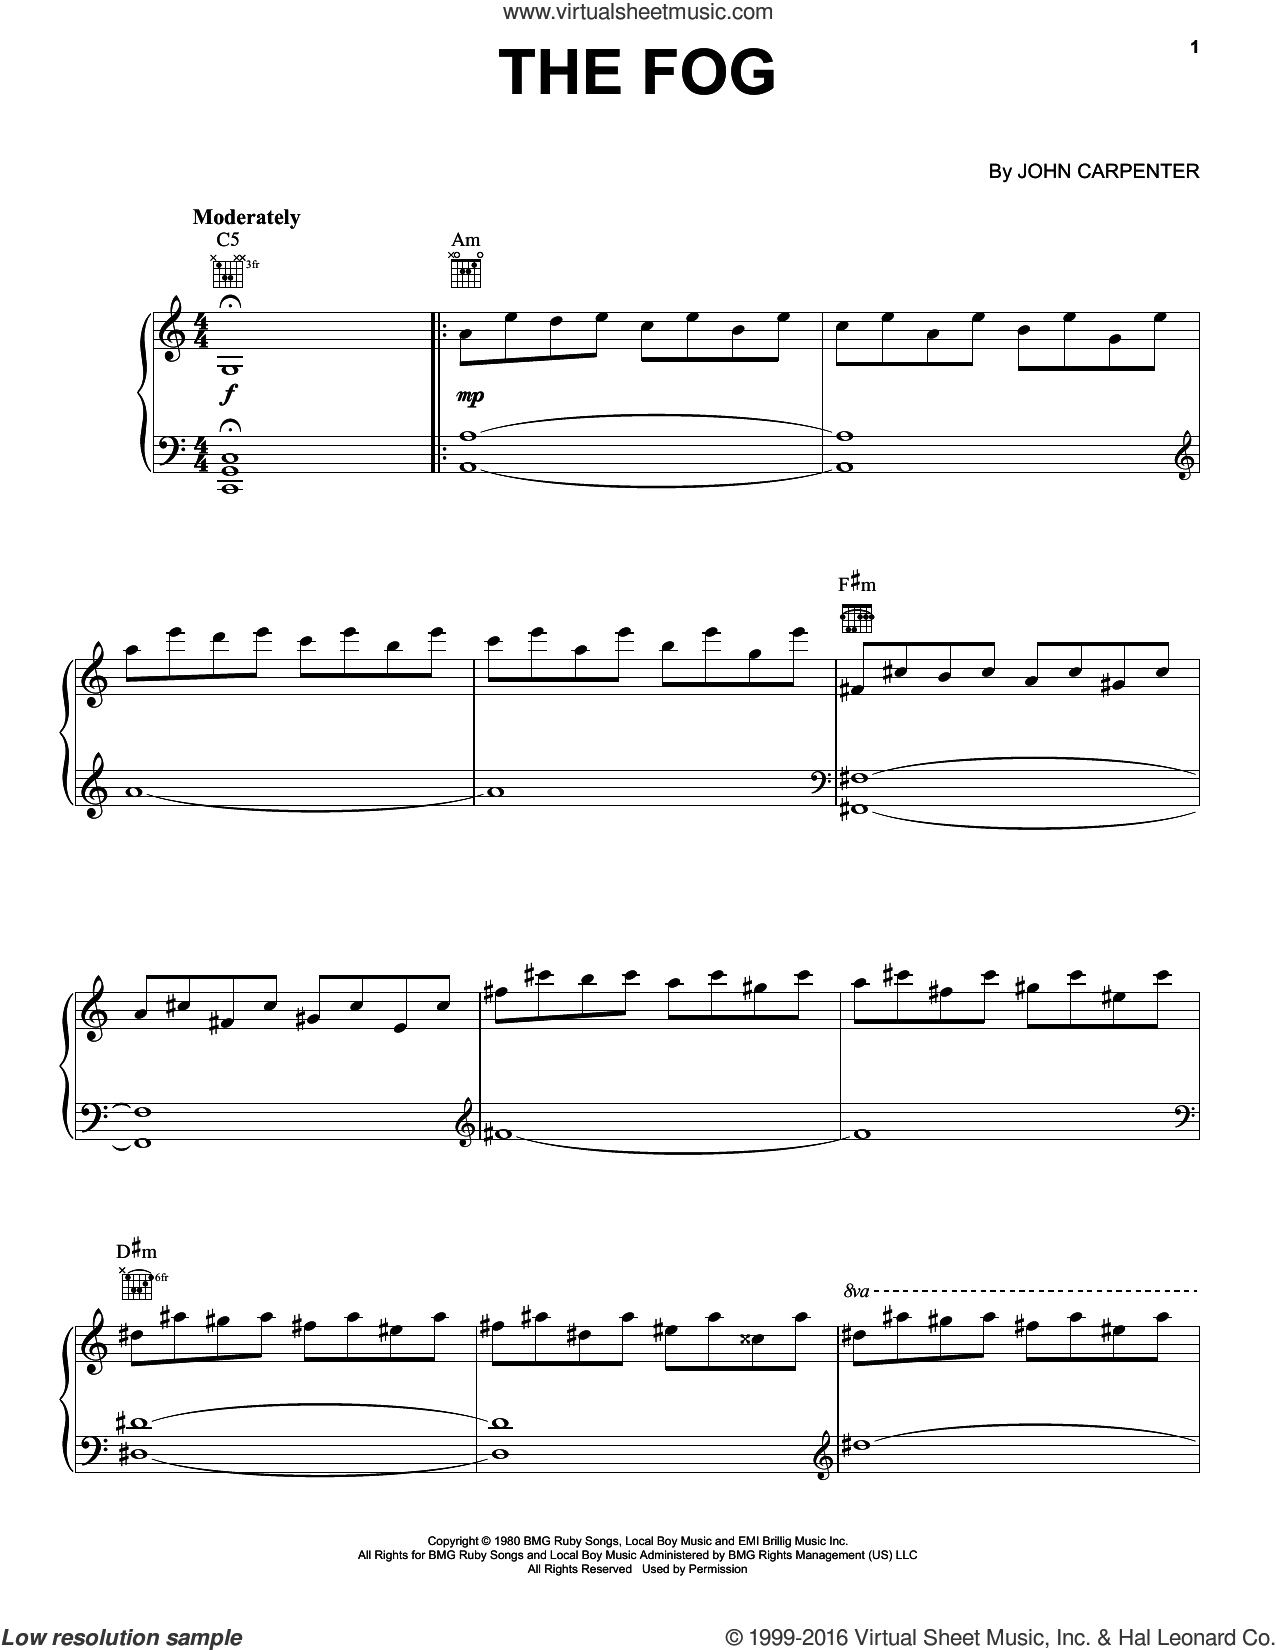 The Fog sheet music for piano solo by John Carpenter, intermediate skill level